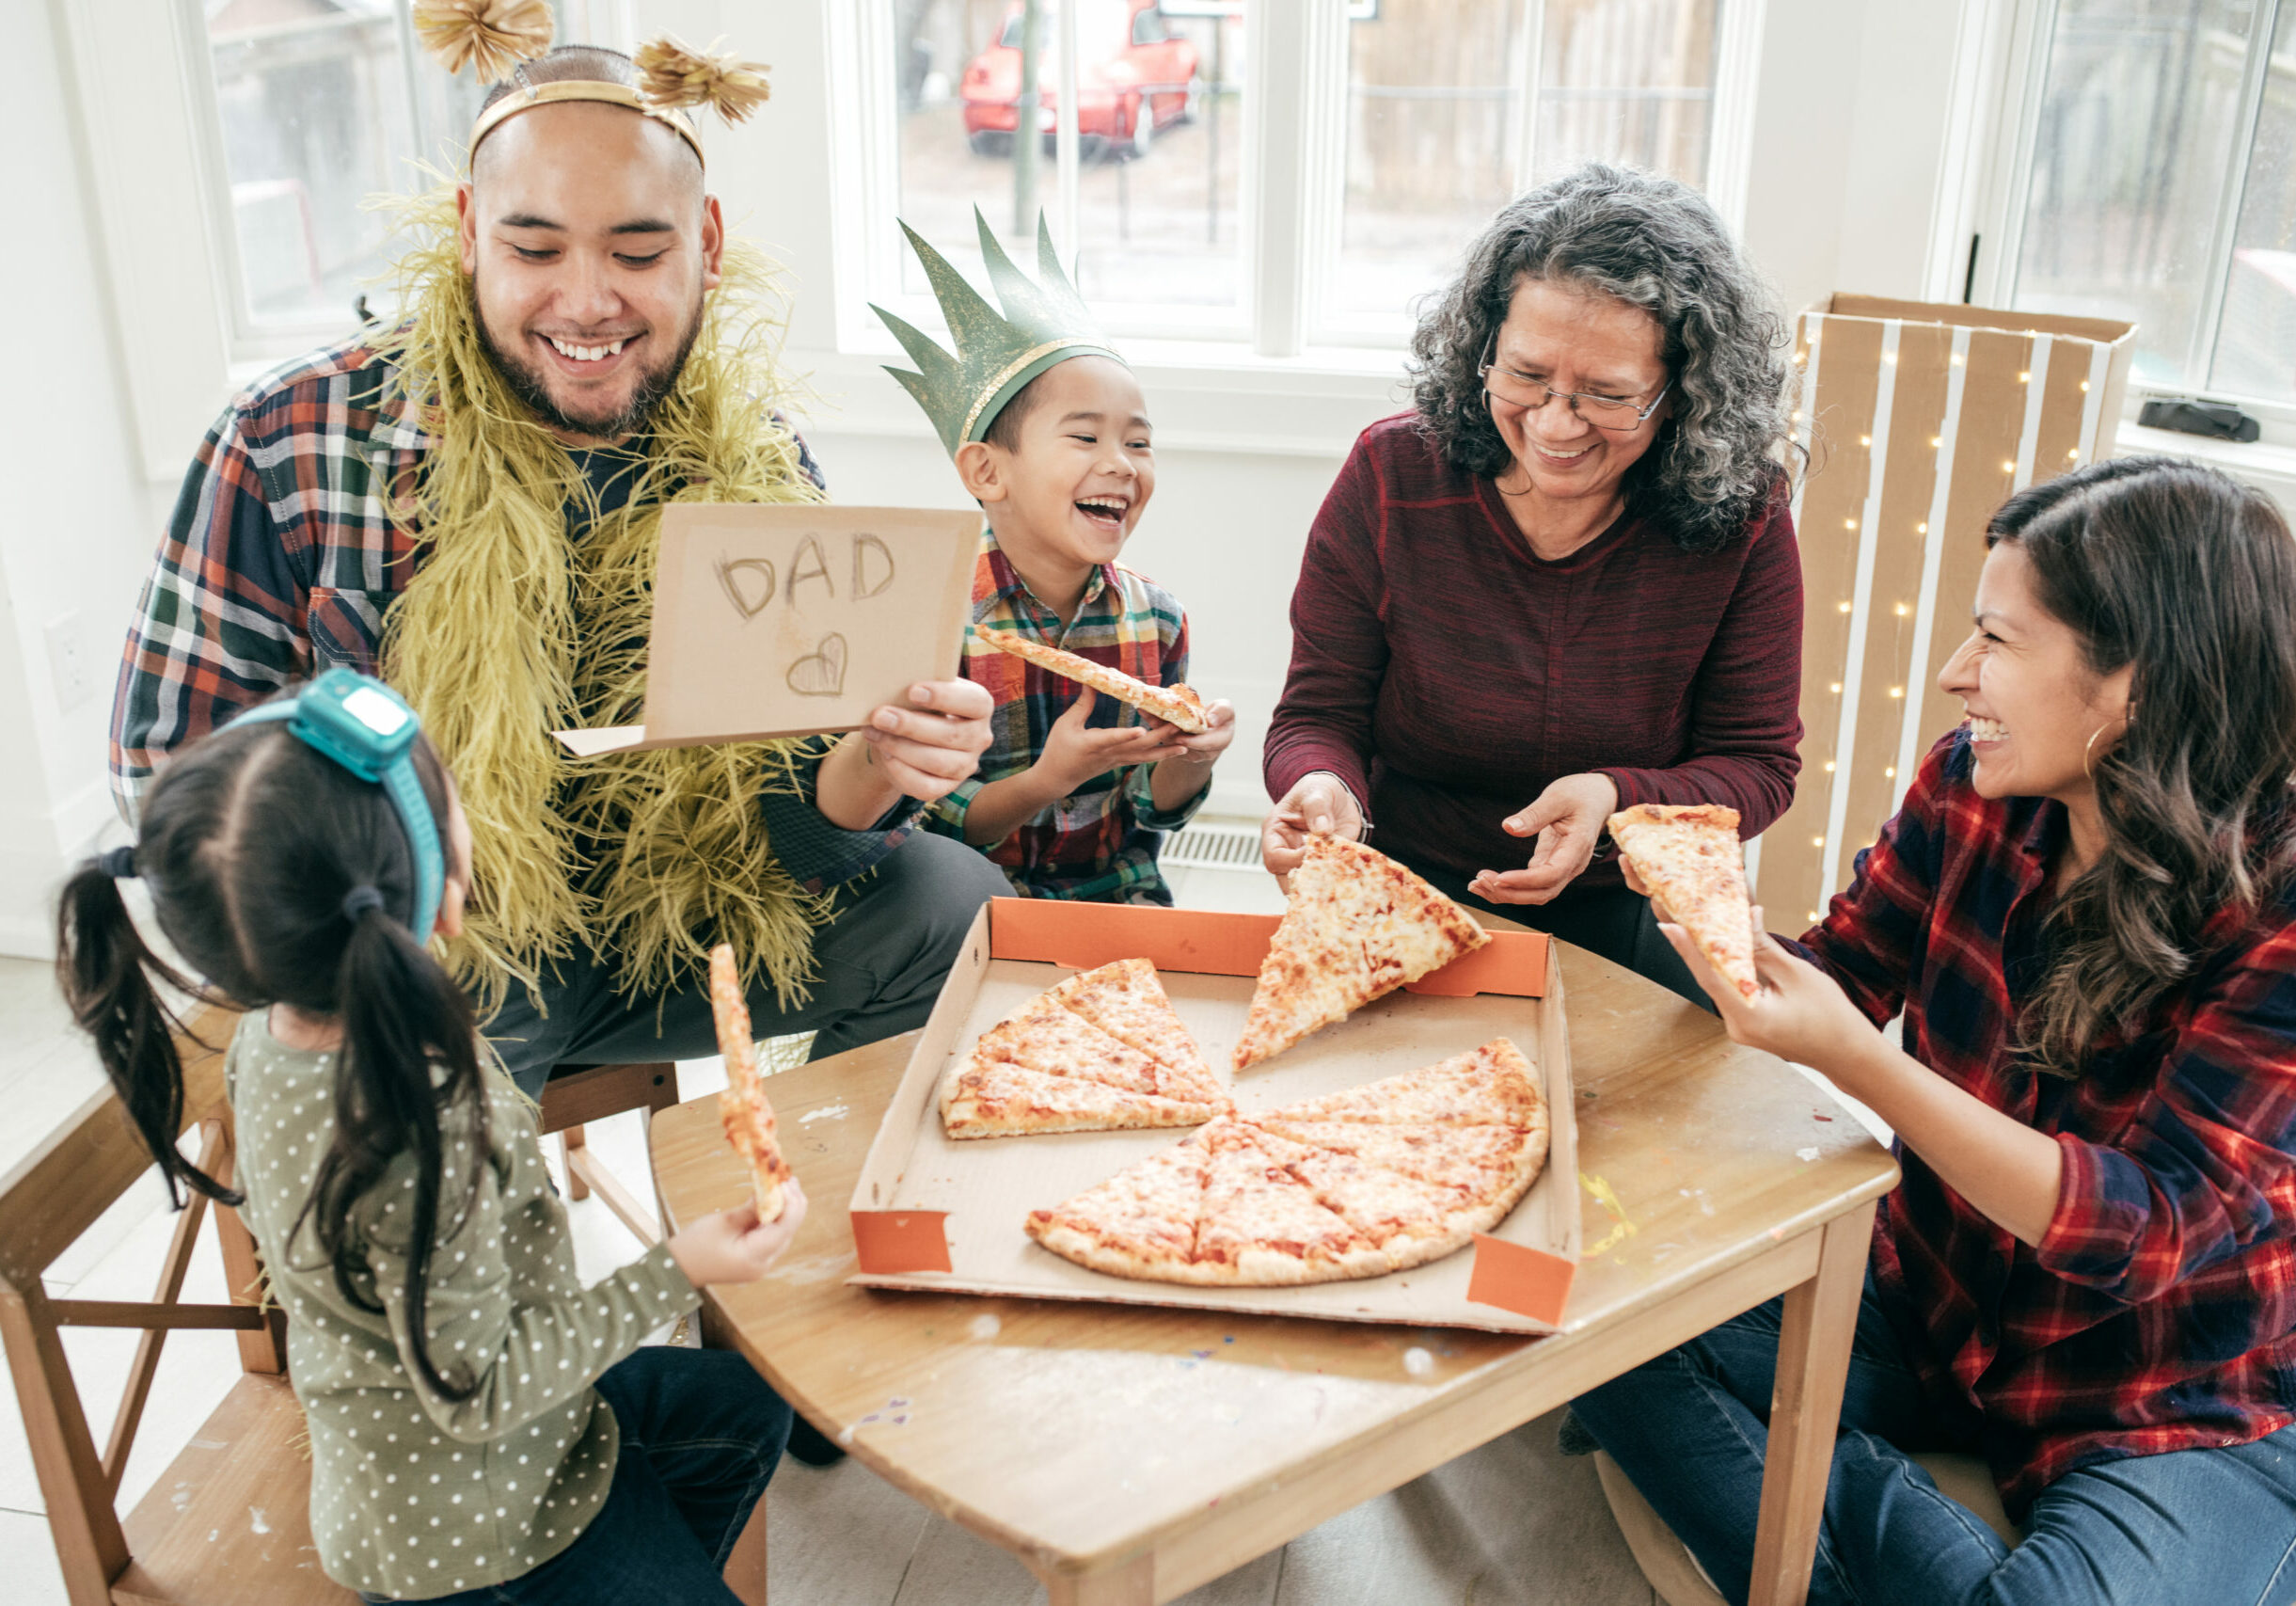 Eating pizza and creating memories